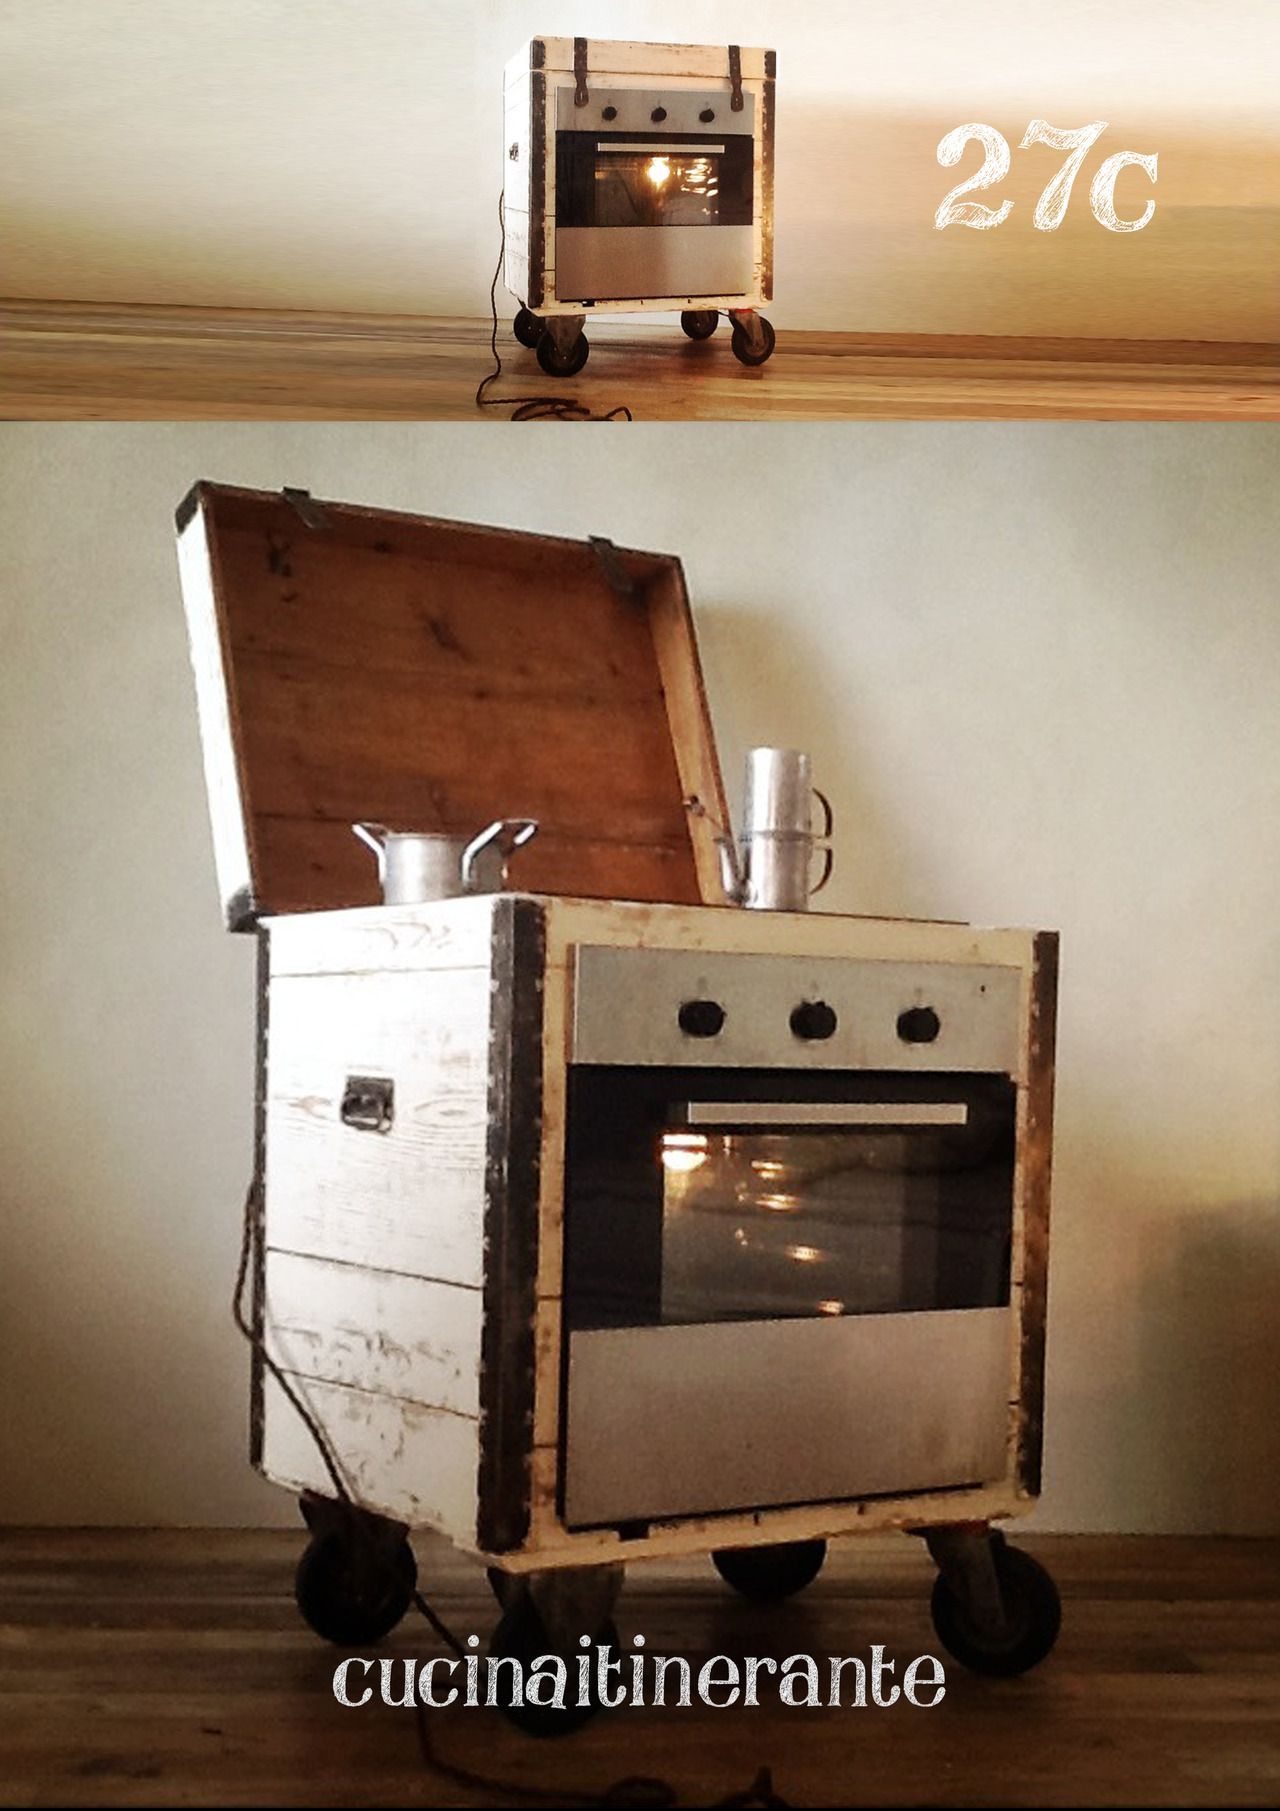 Upcycling furniture italian cooking me